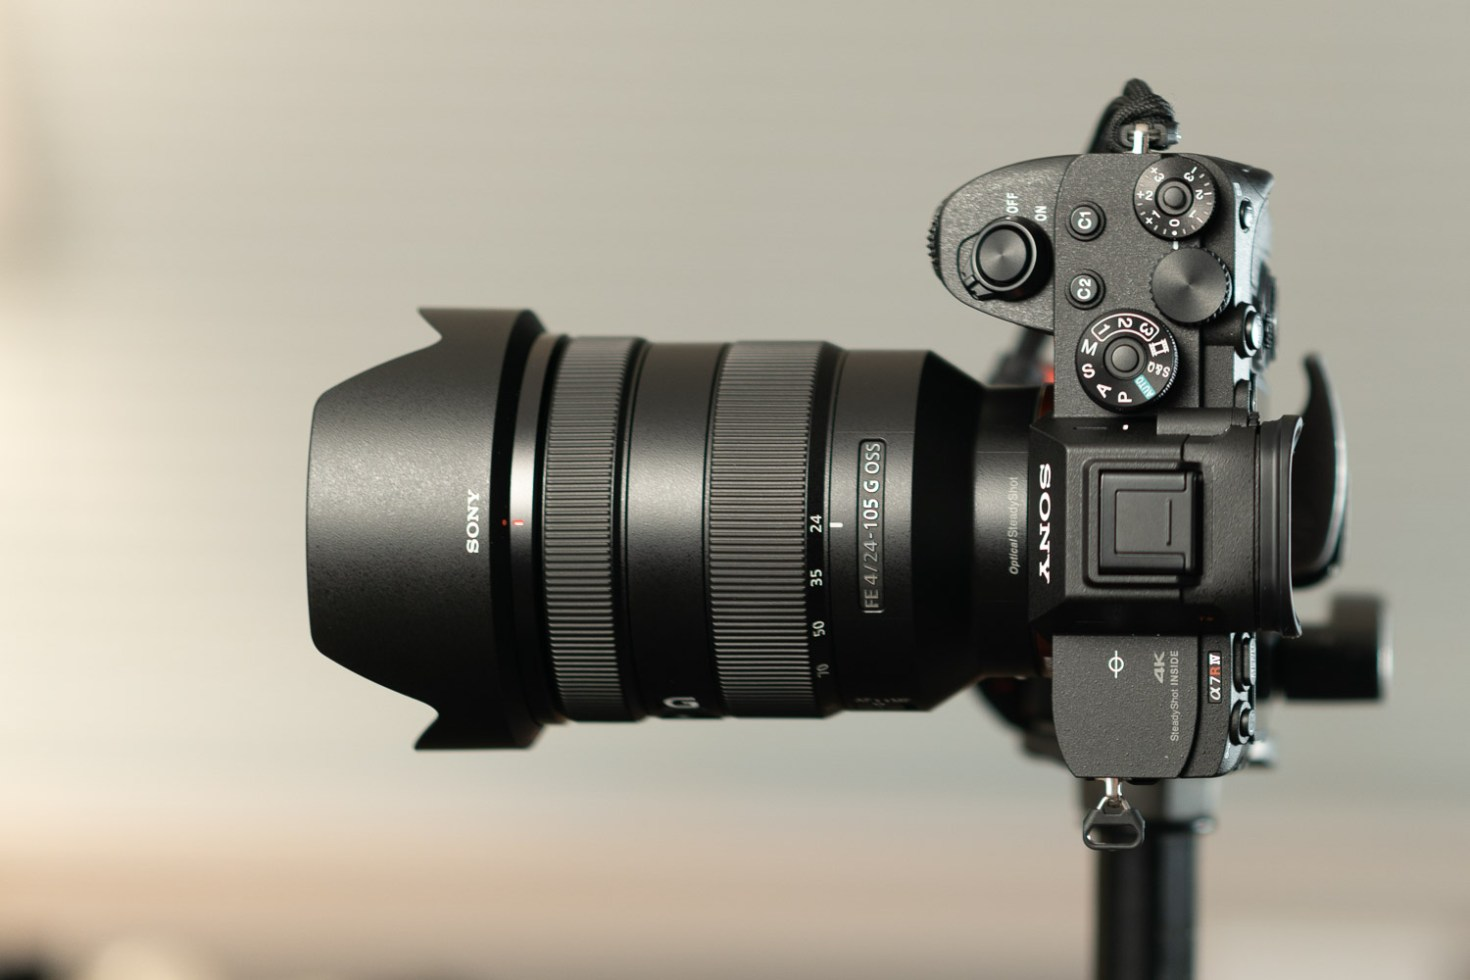 Sony FE 24-105mm F/4 G OSS Lens  @ 24mm - Lab Testing with Sony A7R IV